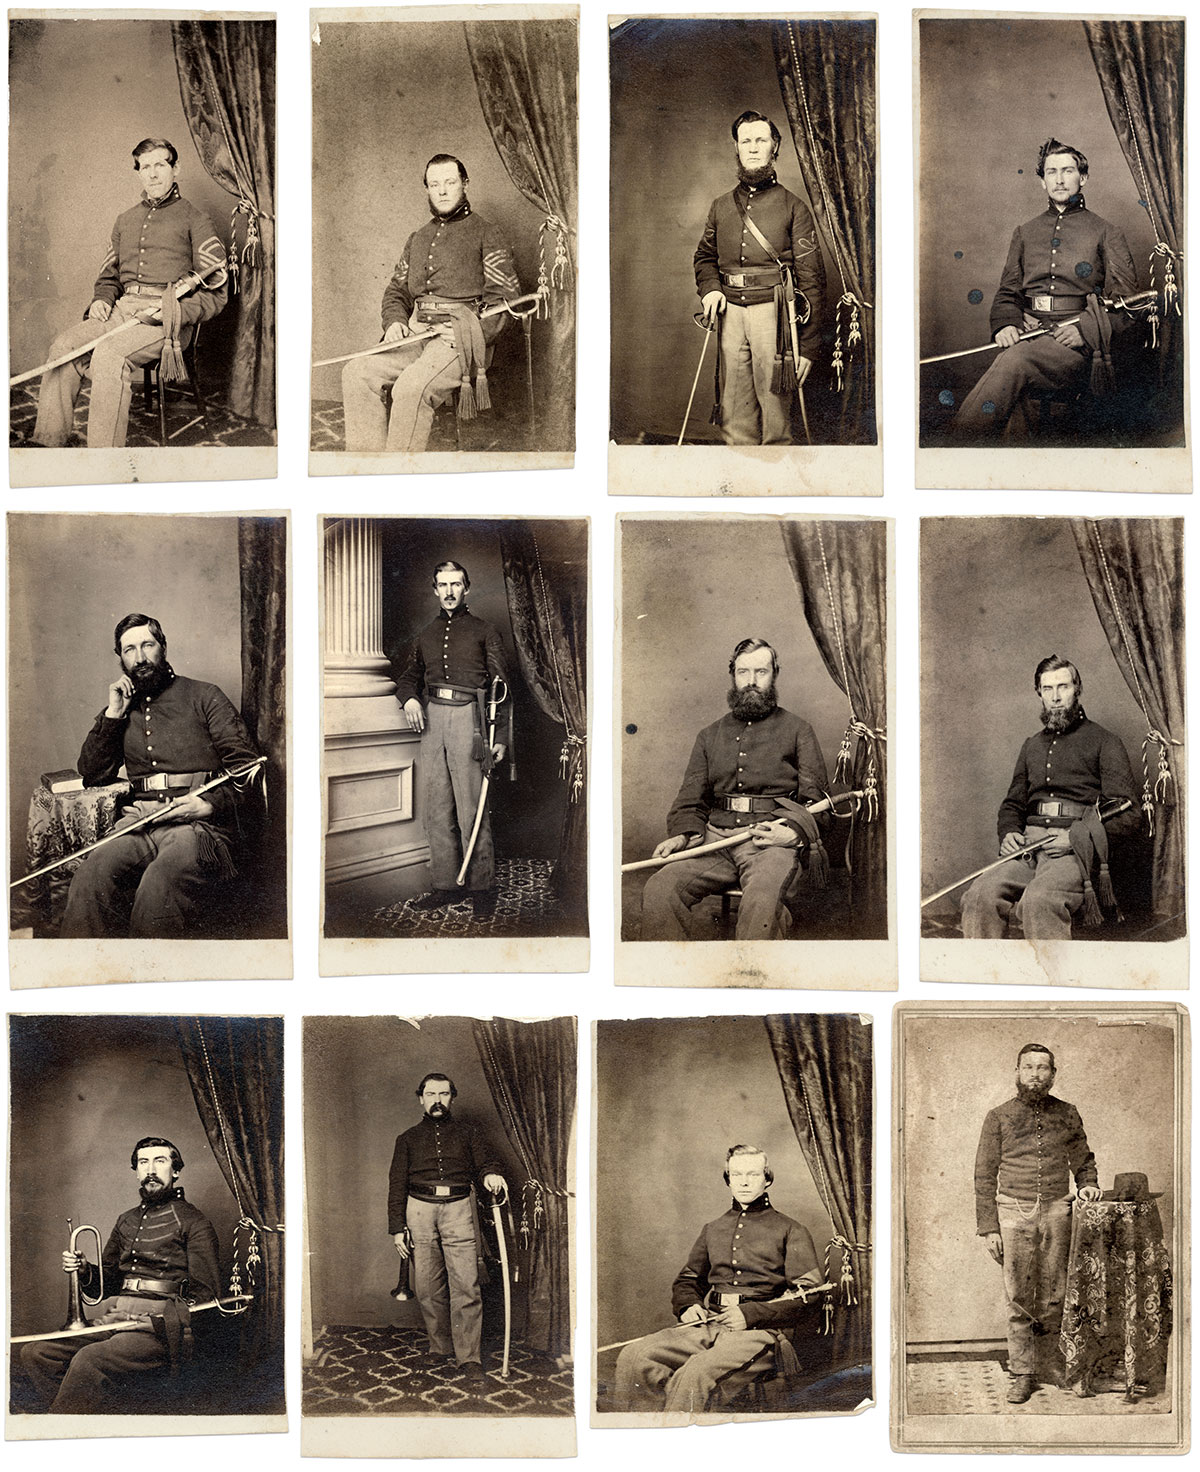 Portraits in the Stetz Album, in order of appearance. First row: Sgt. Maj. Noble D. Preston, Sgt. Maj. Frederick L. Webb, QM Sgt. John B. King, QM Sgt. Henry E. Hayes; Second row: Commissary Sgt. Marshall R. Woodruff, Commissary Sgt. Oscar P. Whedon, Saddler Sgt. Thomas Barry, Saddler Sgt. Joseph T. Griffin; Third row: Chief Bugler Addison Cole, Chief Bugler George Strack, Hospital Steward Walter Kempster, Unidentified private.